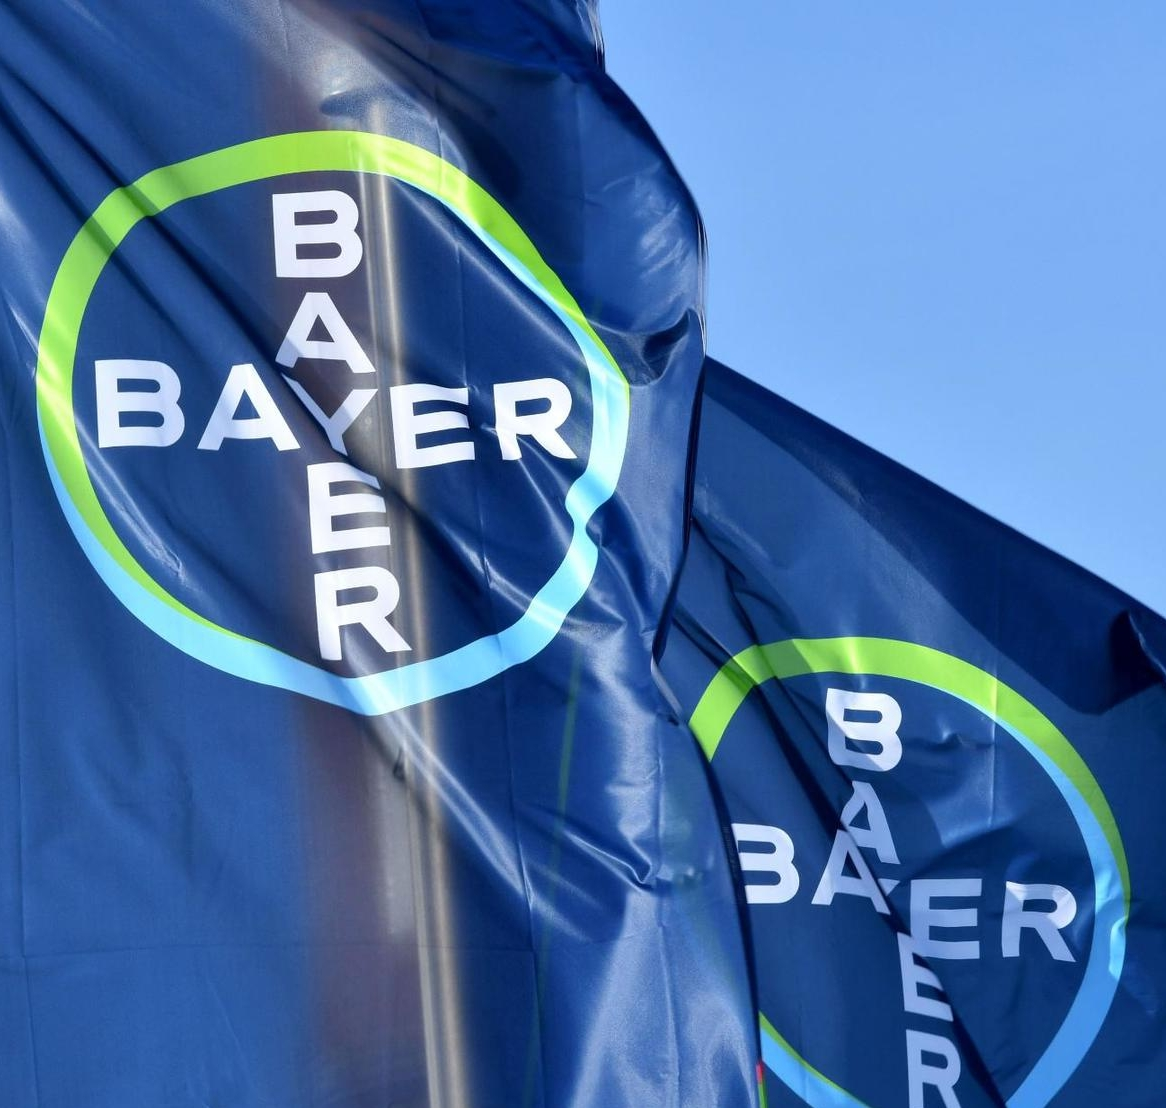 Bayer employer branding campaign strategy and concept. Bijan 2017.